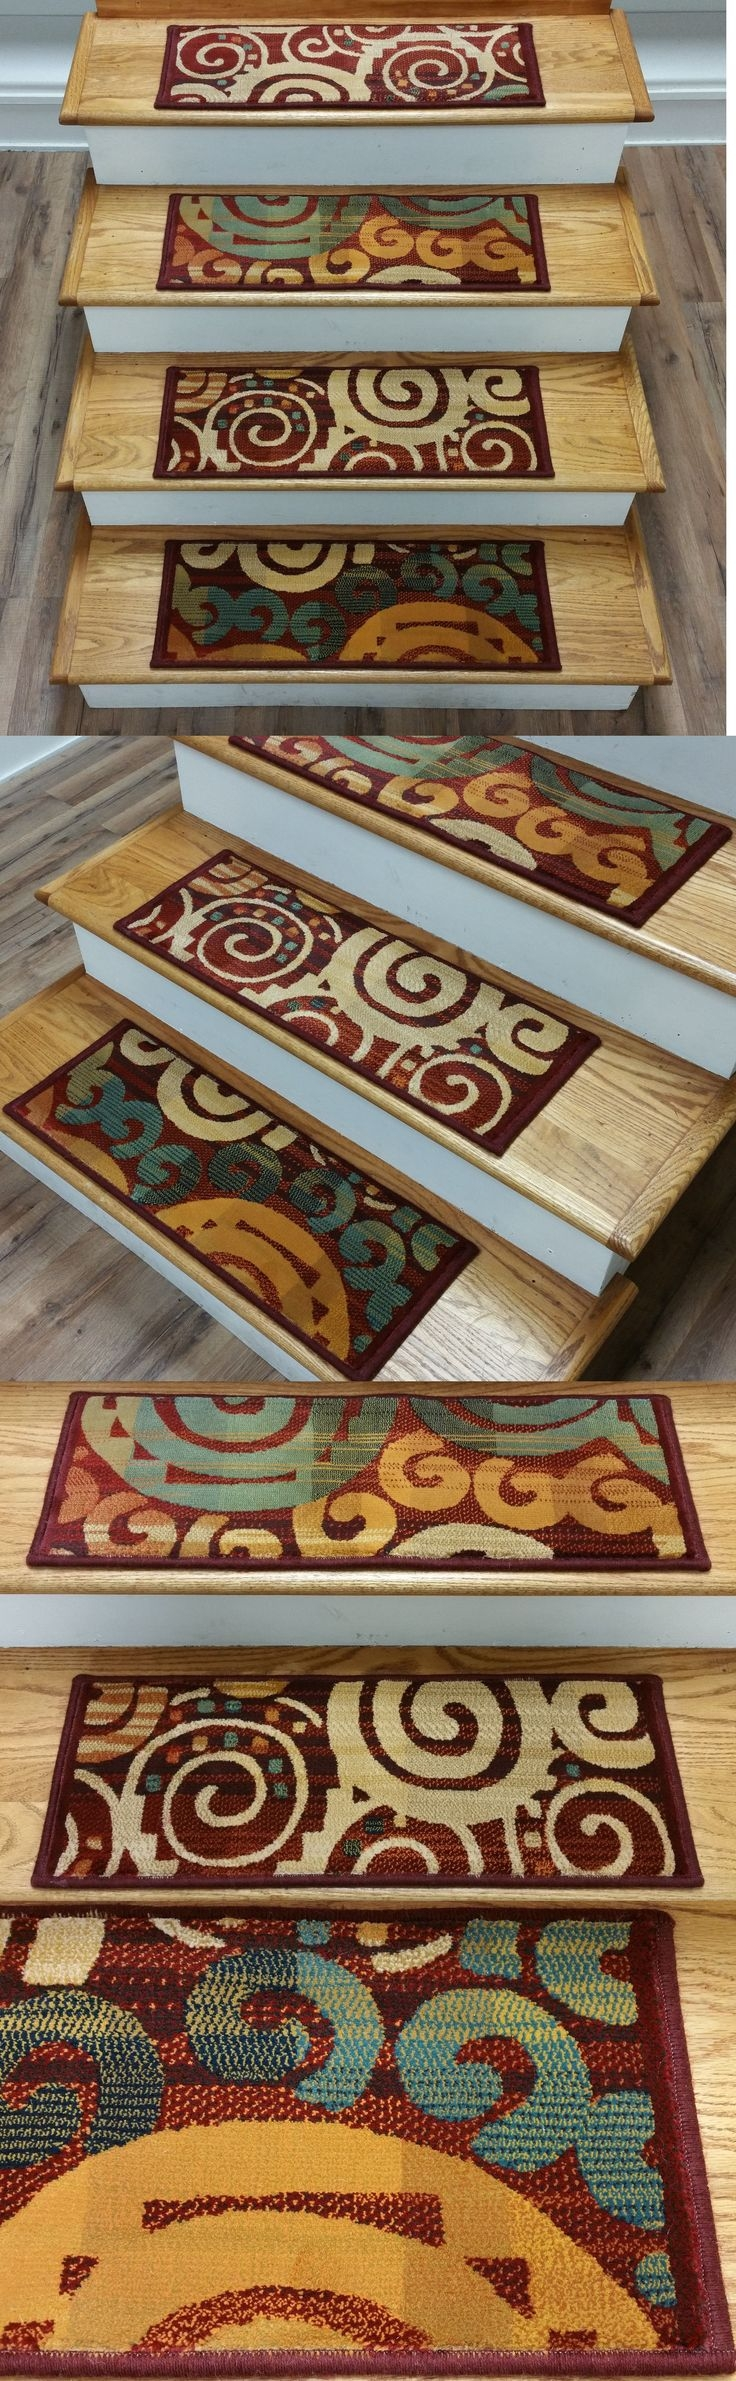 Best 20 Contemporary Stair Tread Rugs Ideas On Pinterest Rugs Throughout Colonial Mills Stair Tread Rugs (#3 of 20)